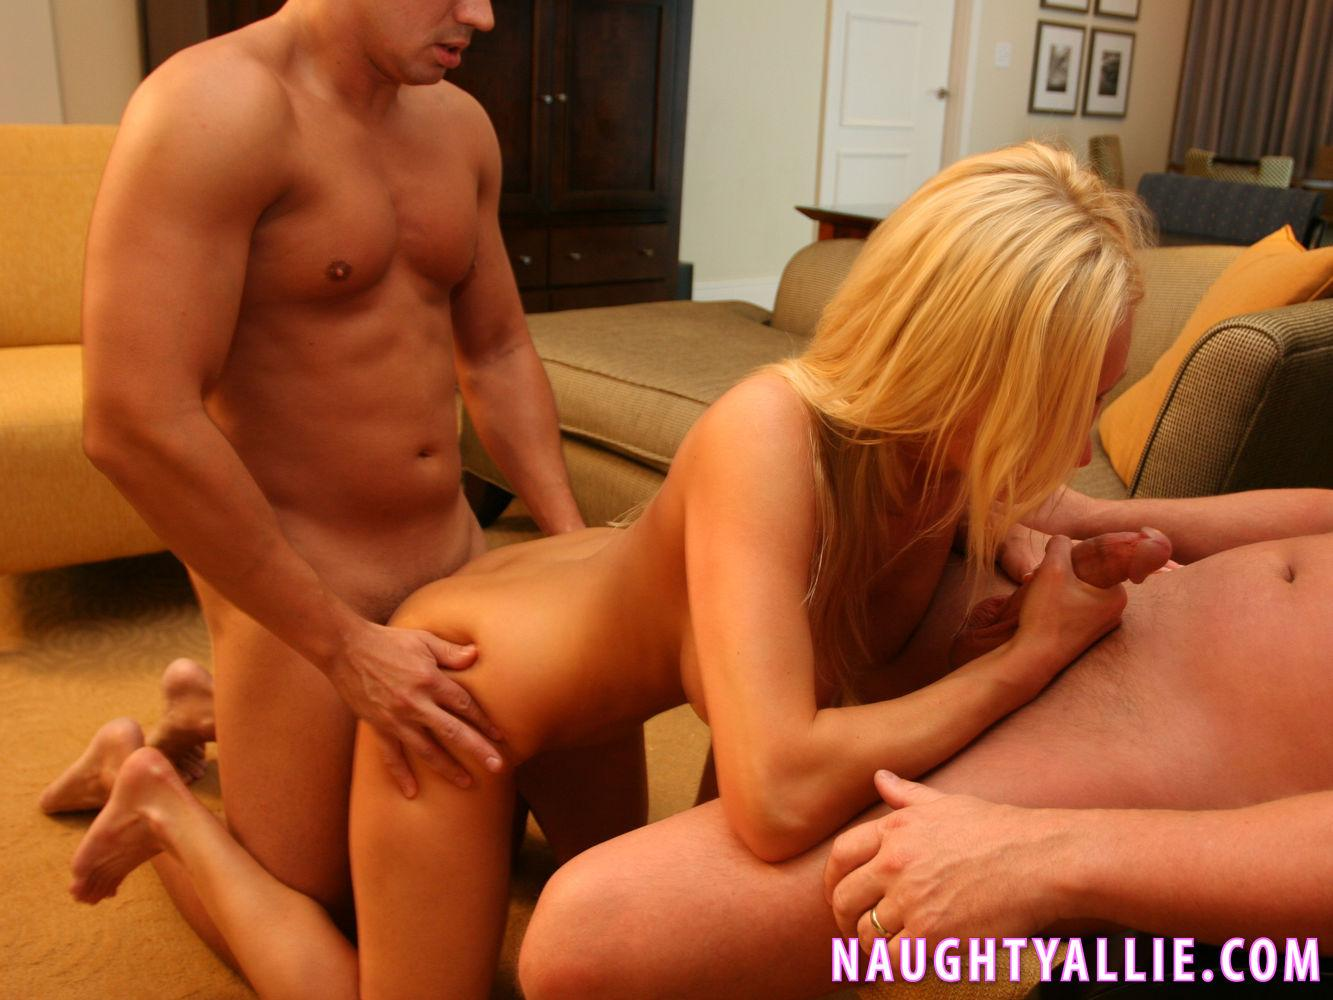 Naughty allie and taylor and threesome and video about